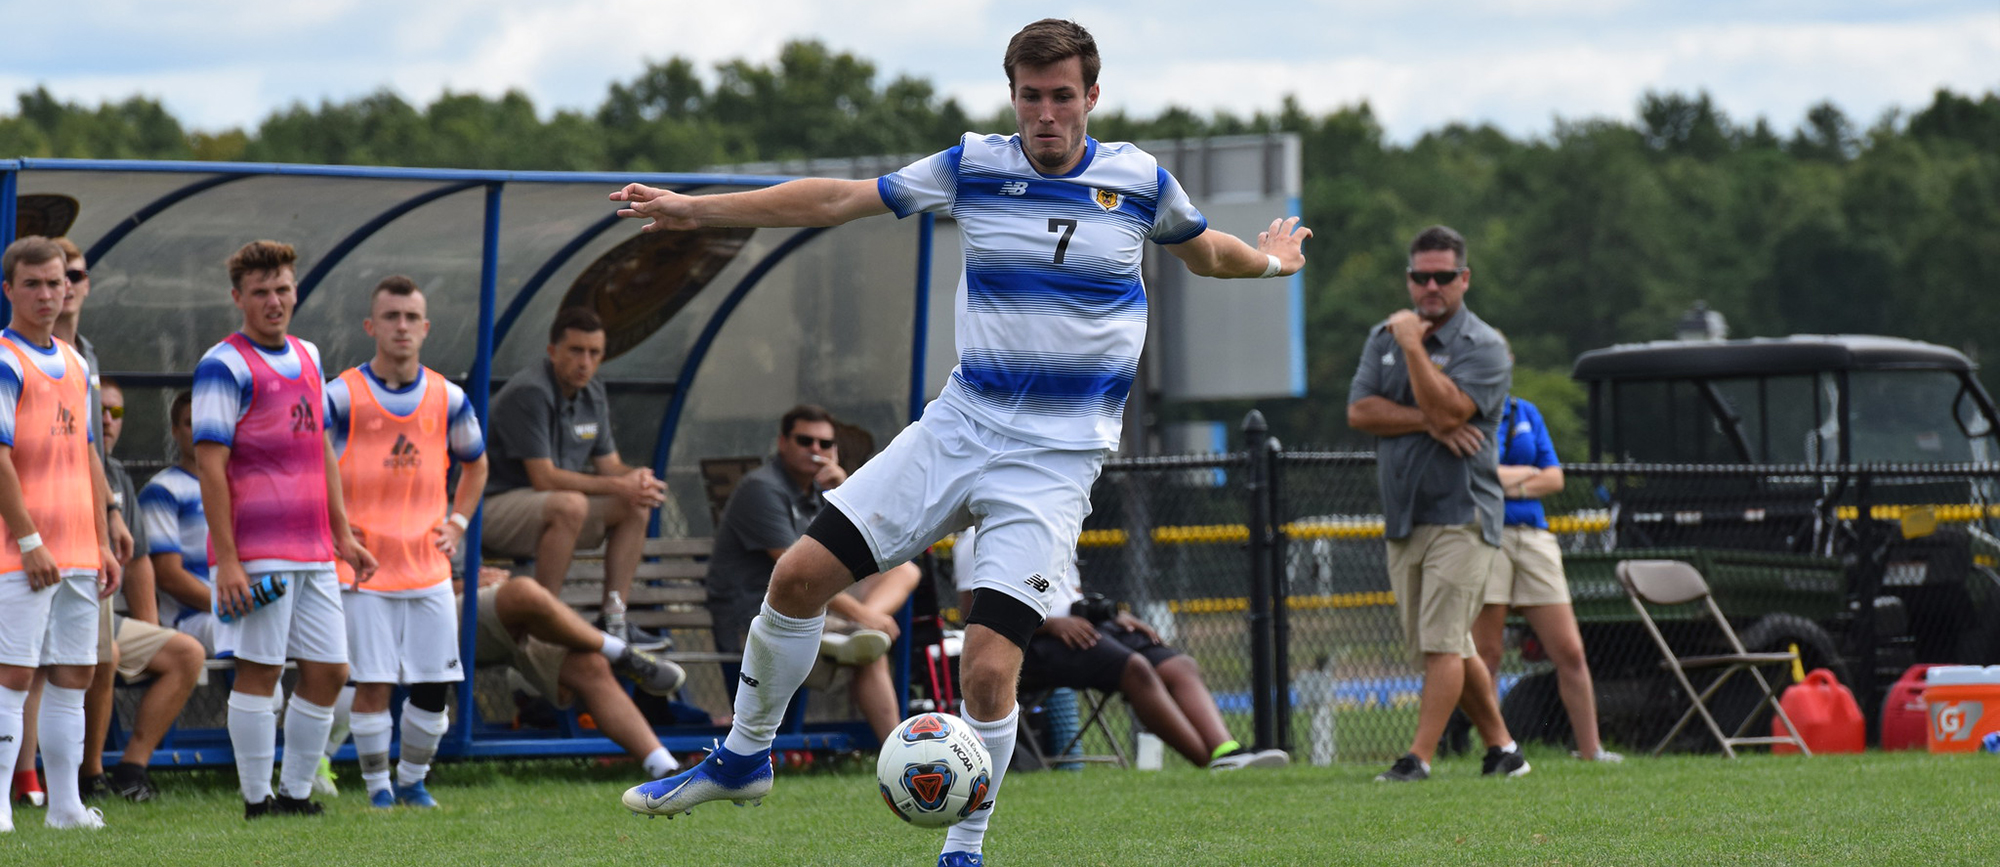 Brendan Claflin scored his first goal of the season in Western New England's 2-0 win at Worcester State on Friday. (Photo by Rachael Margossian)